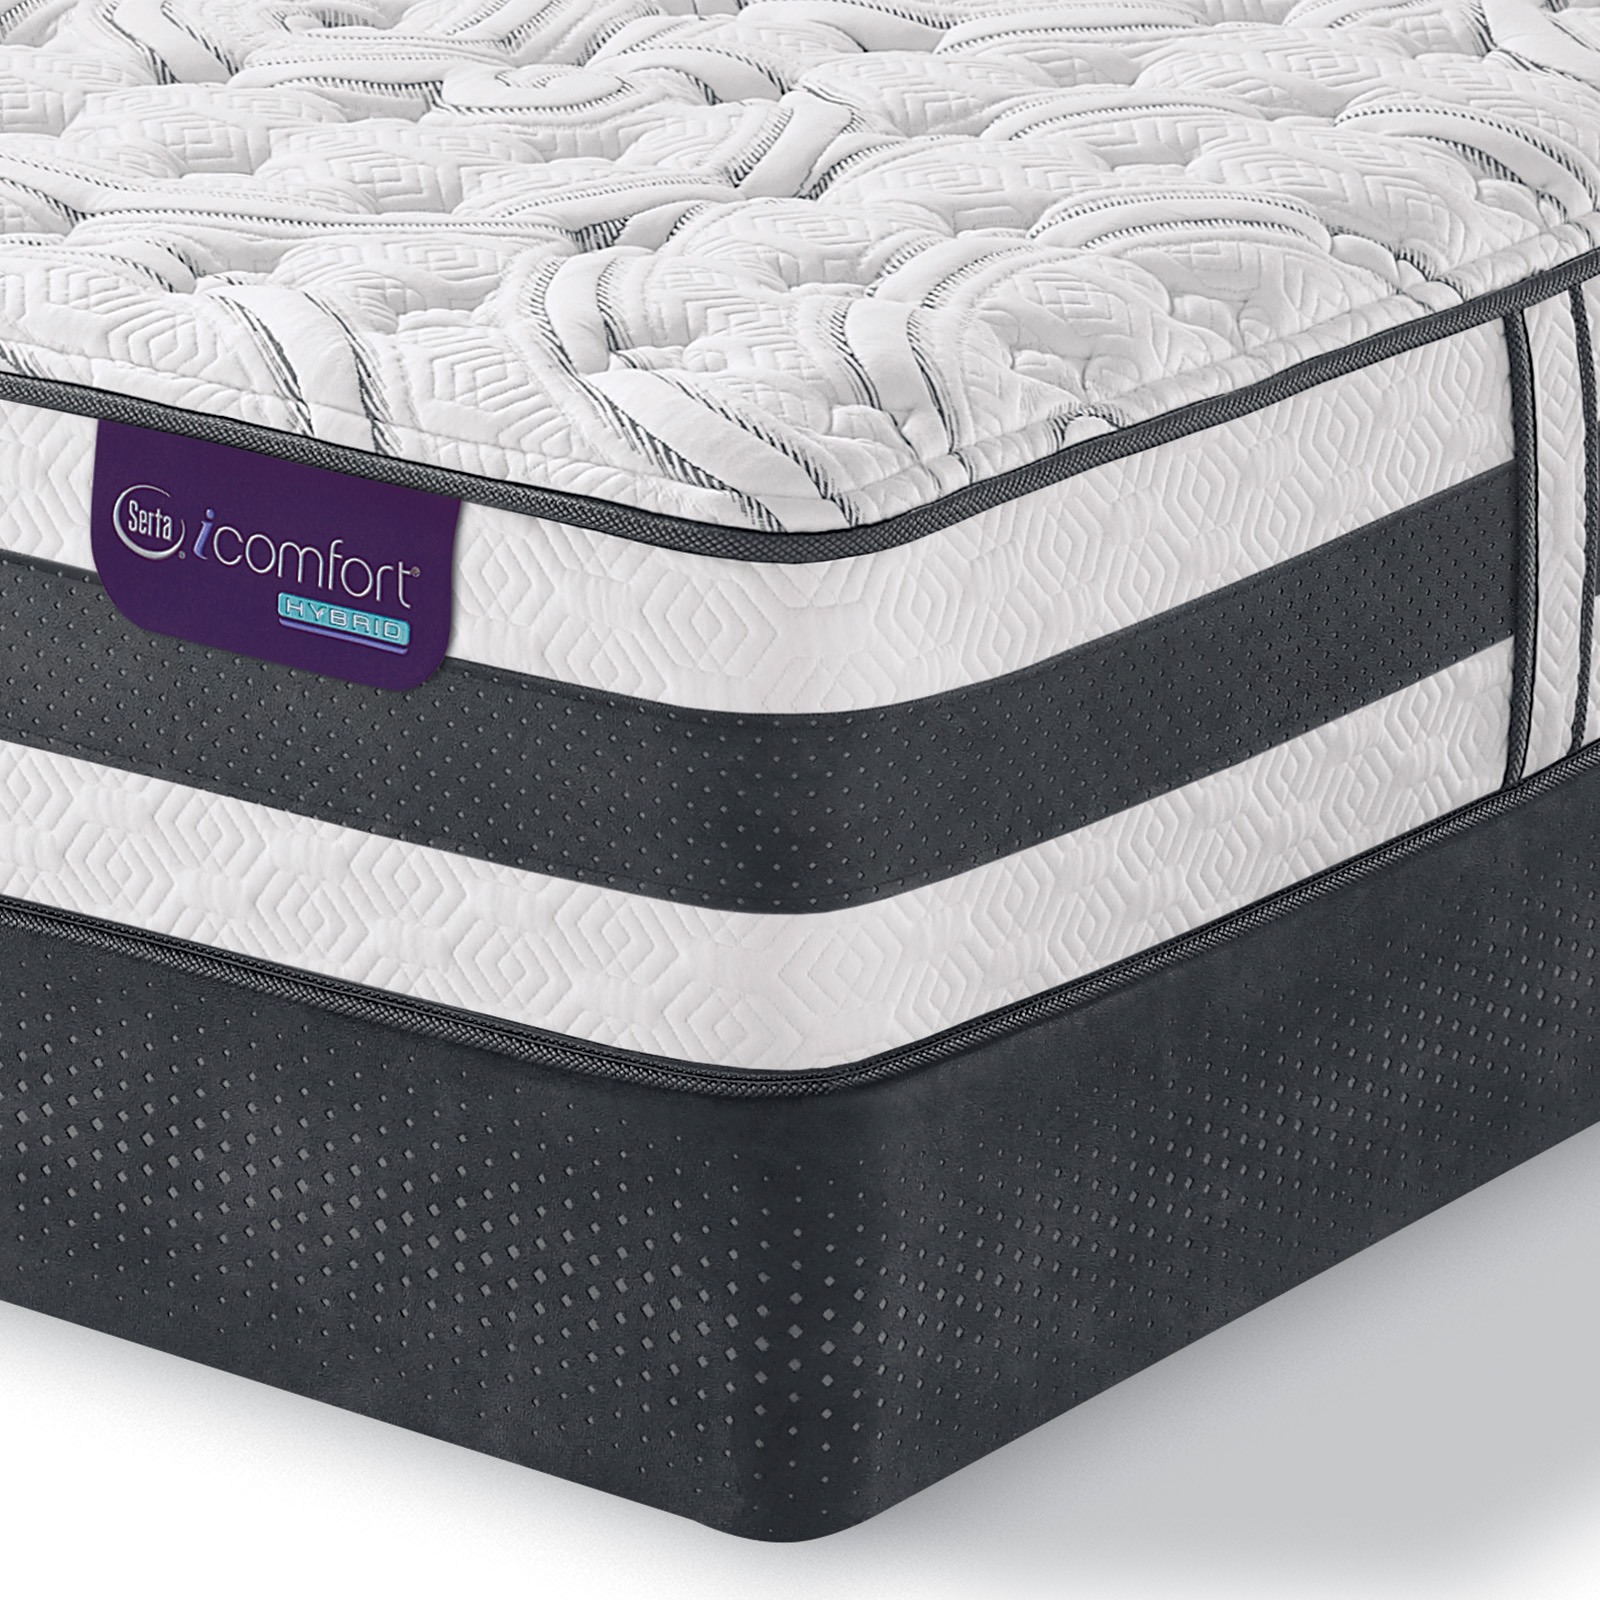 Serta iComfort Hybrid Recognition Extra Firm Full Mattress